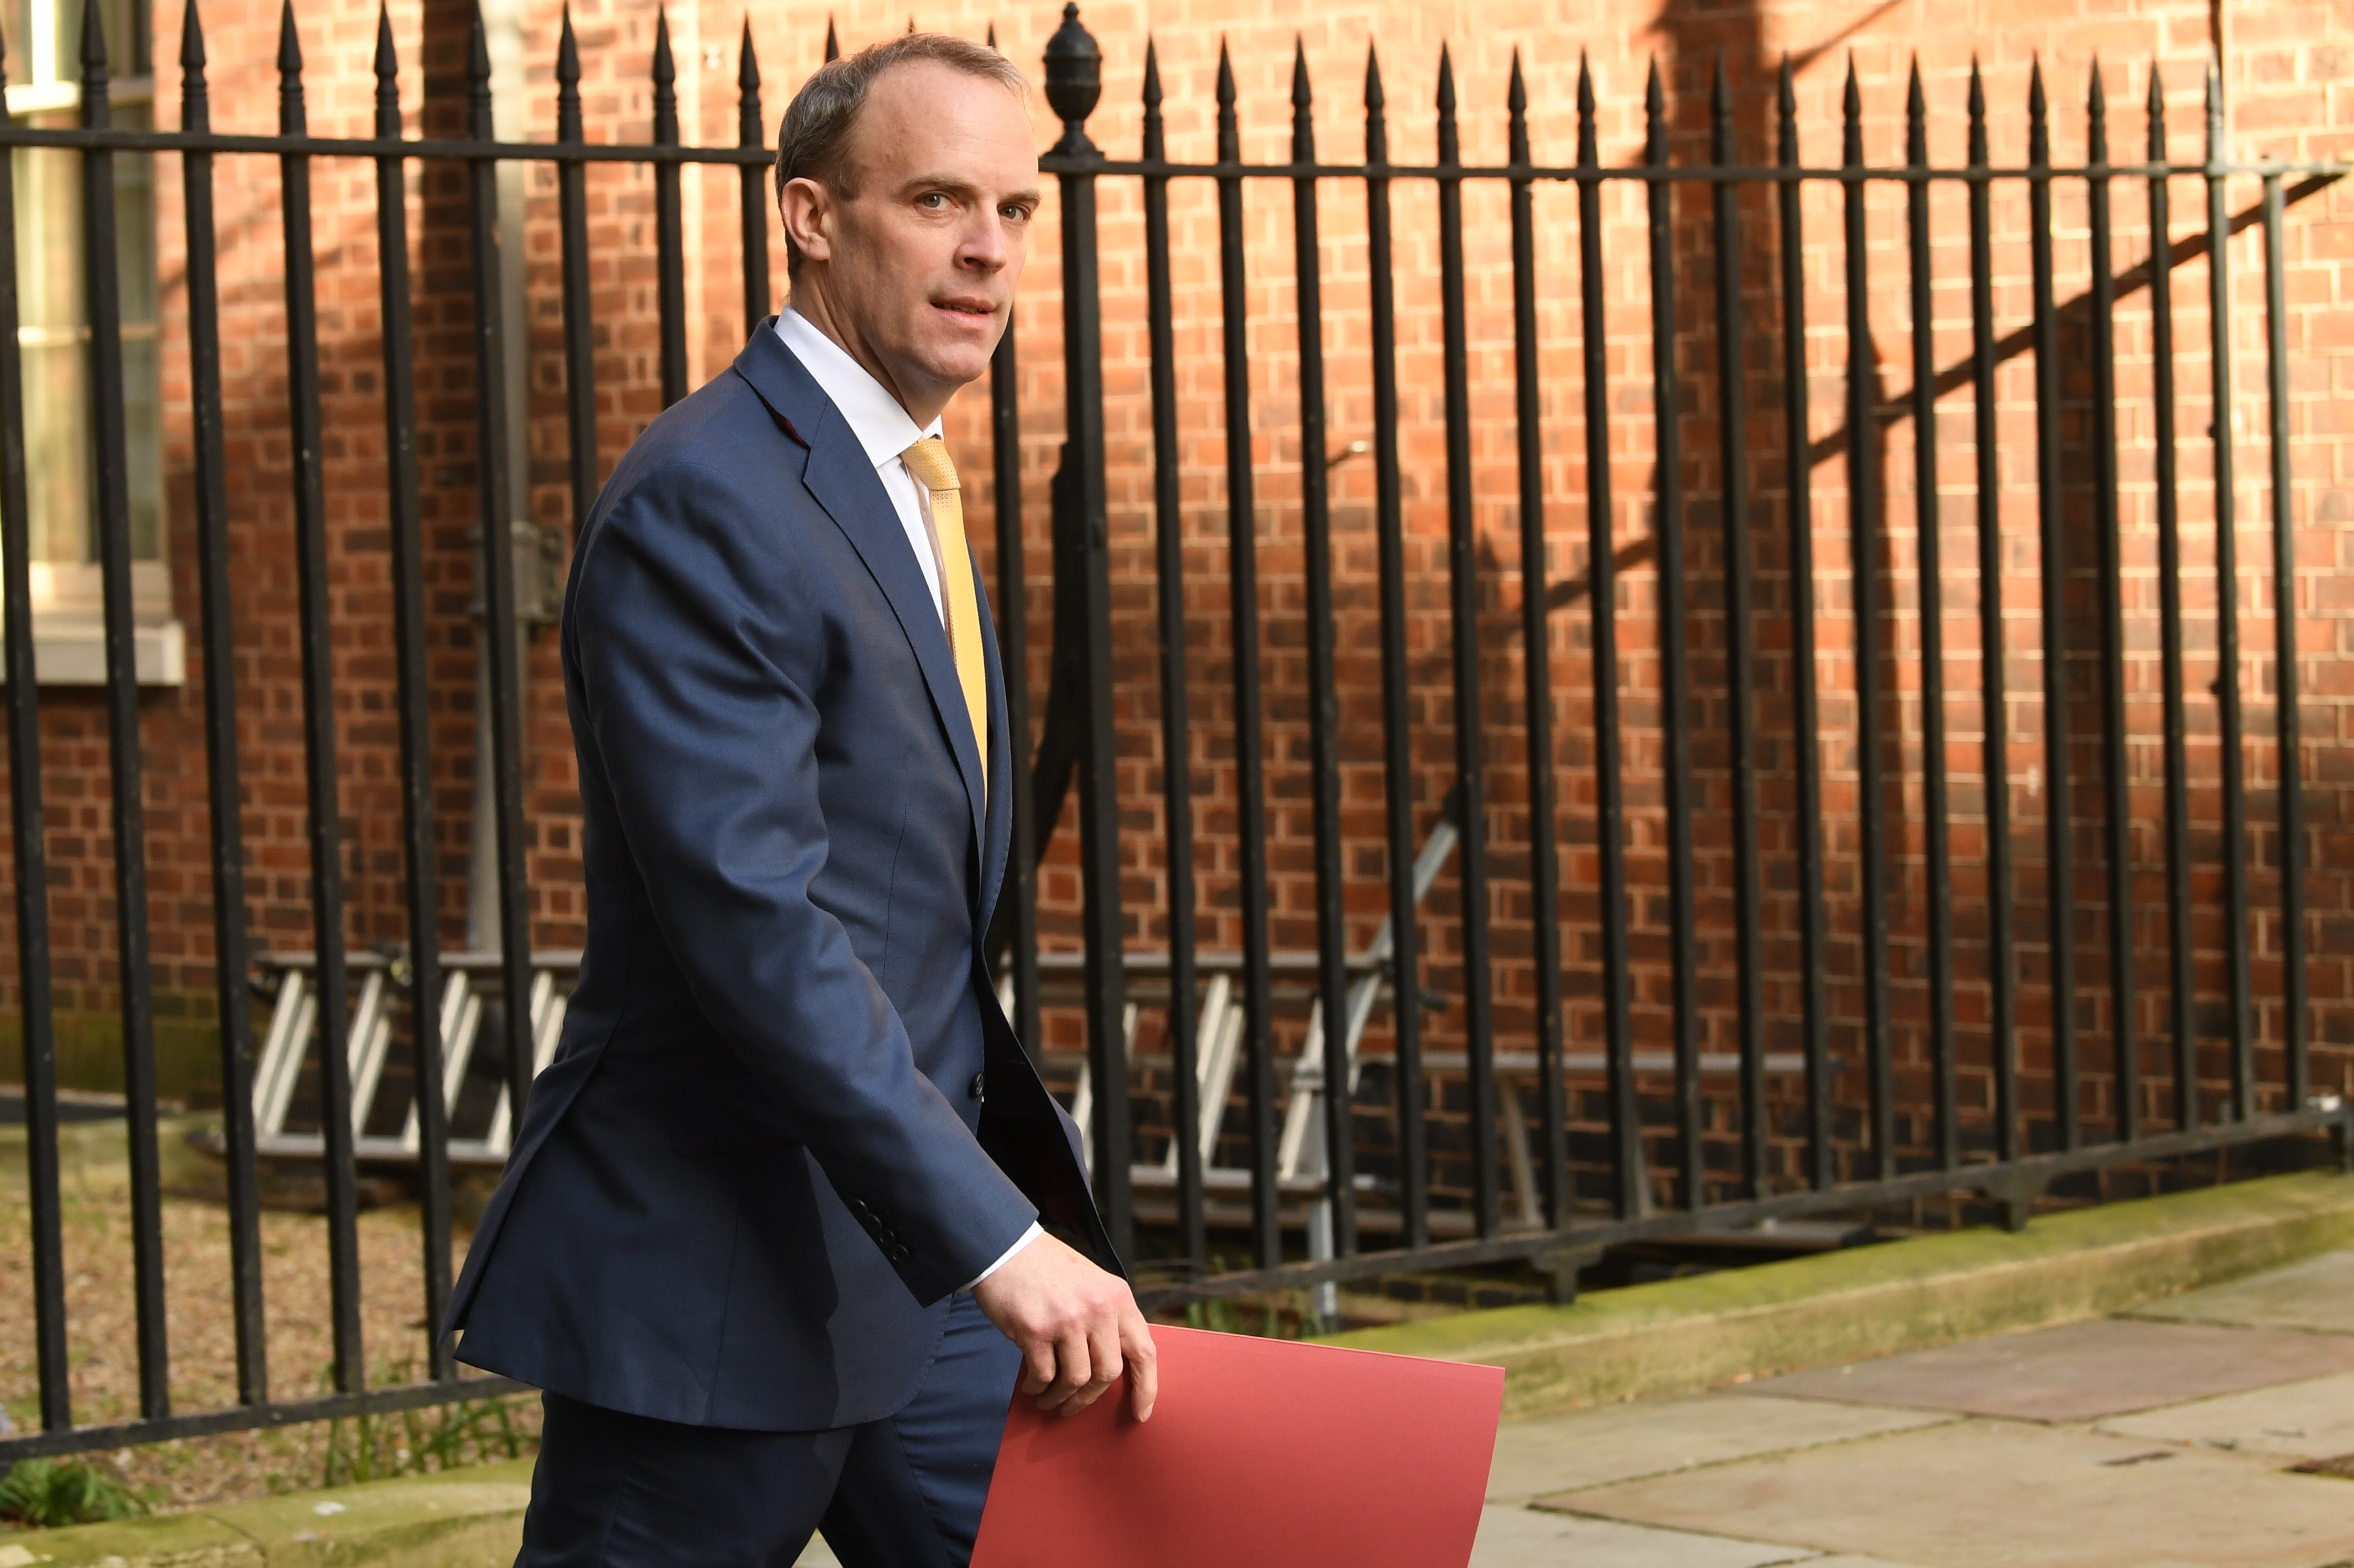 Foreign Secretary Dominic Raab, who is taking charge of the Government's response to the coronavirus crisis after Prime Minister Boris Johnson was admitted to intensive care Monday, arrives at 10 Downing Street, London.